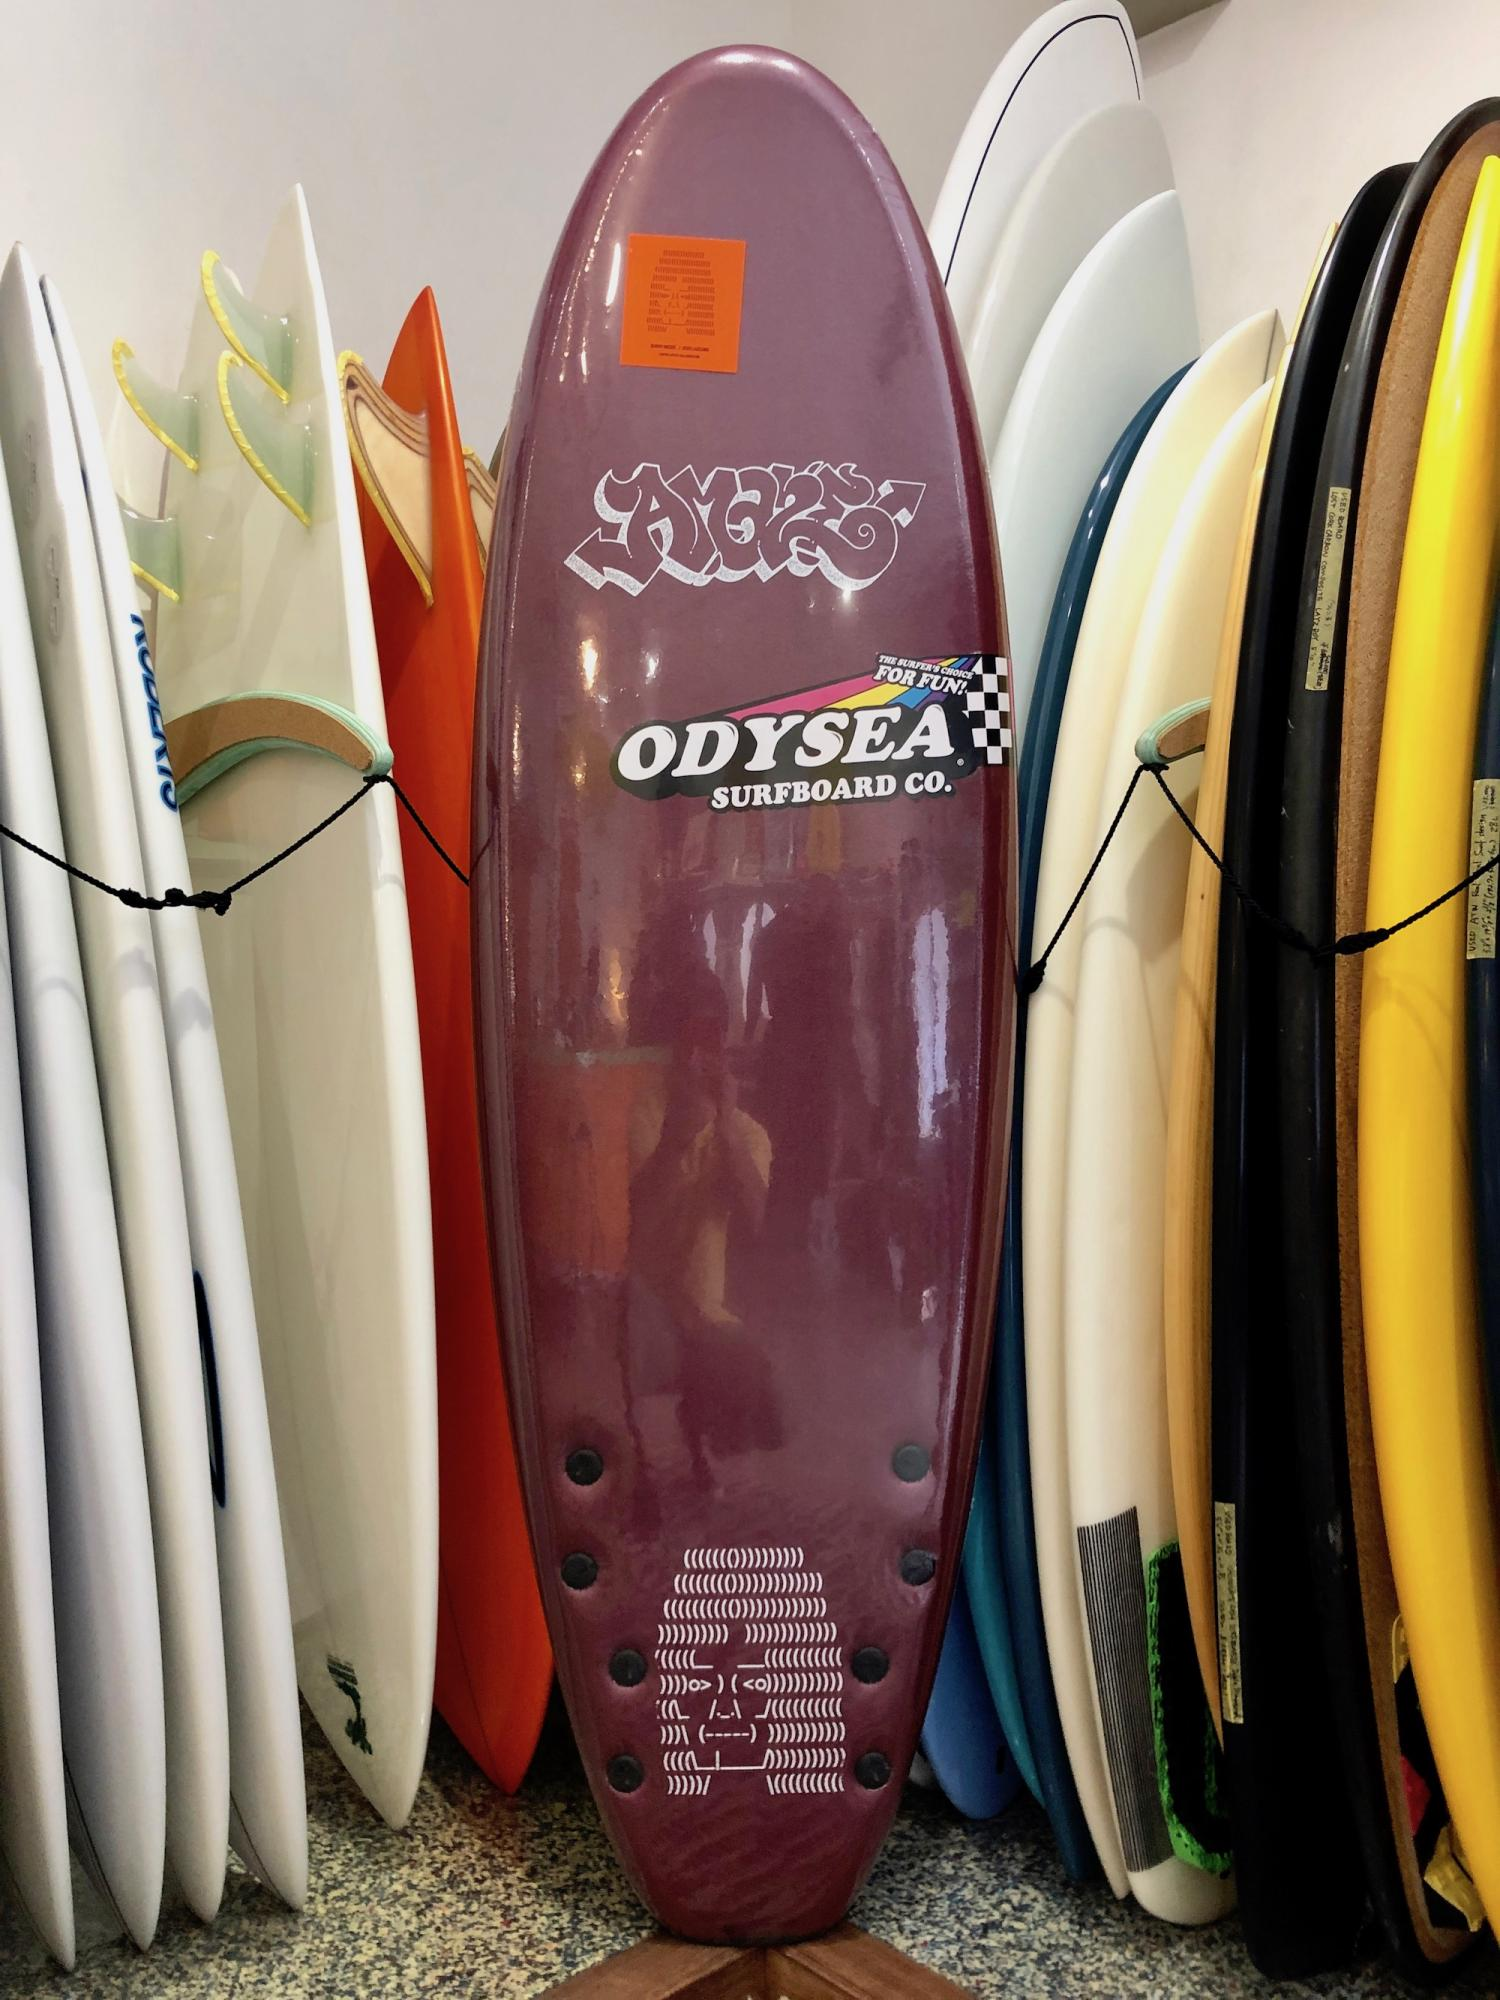 ODYSEA 6.0 Barry McGee and Josh Lazcano Quad Fin